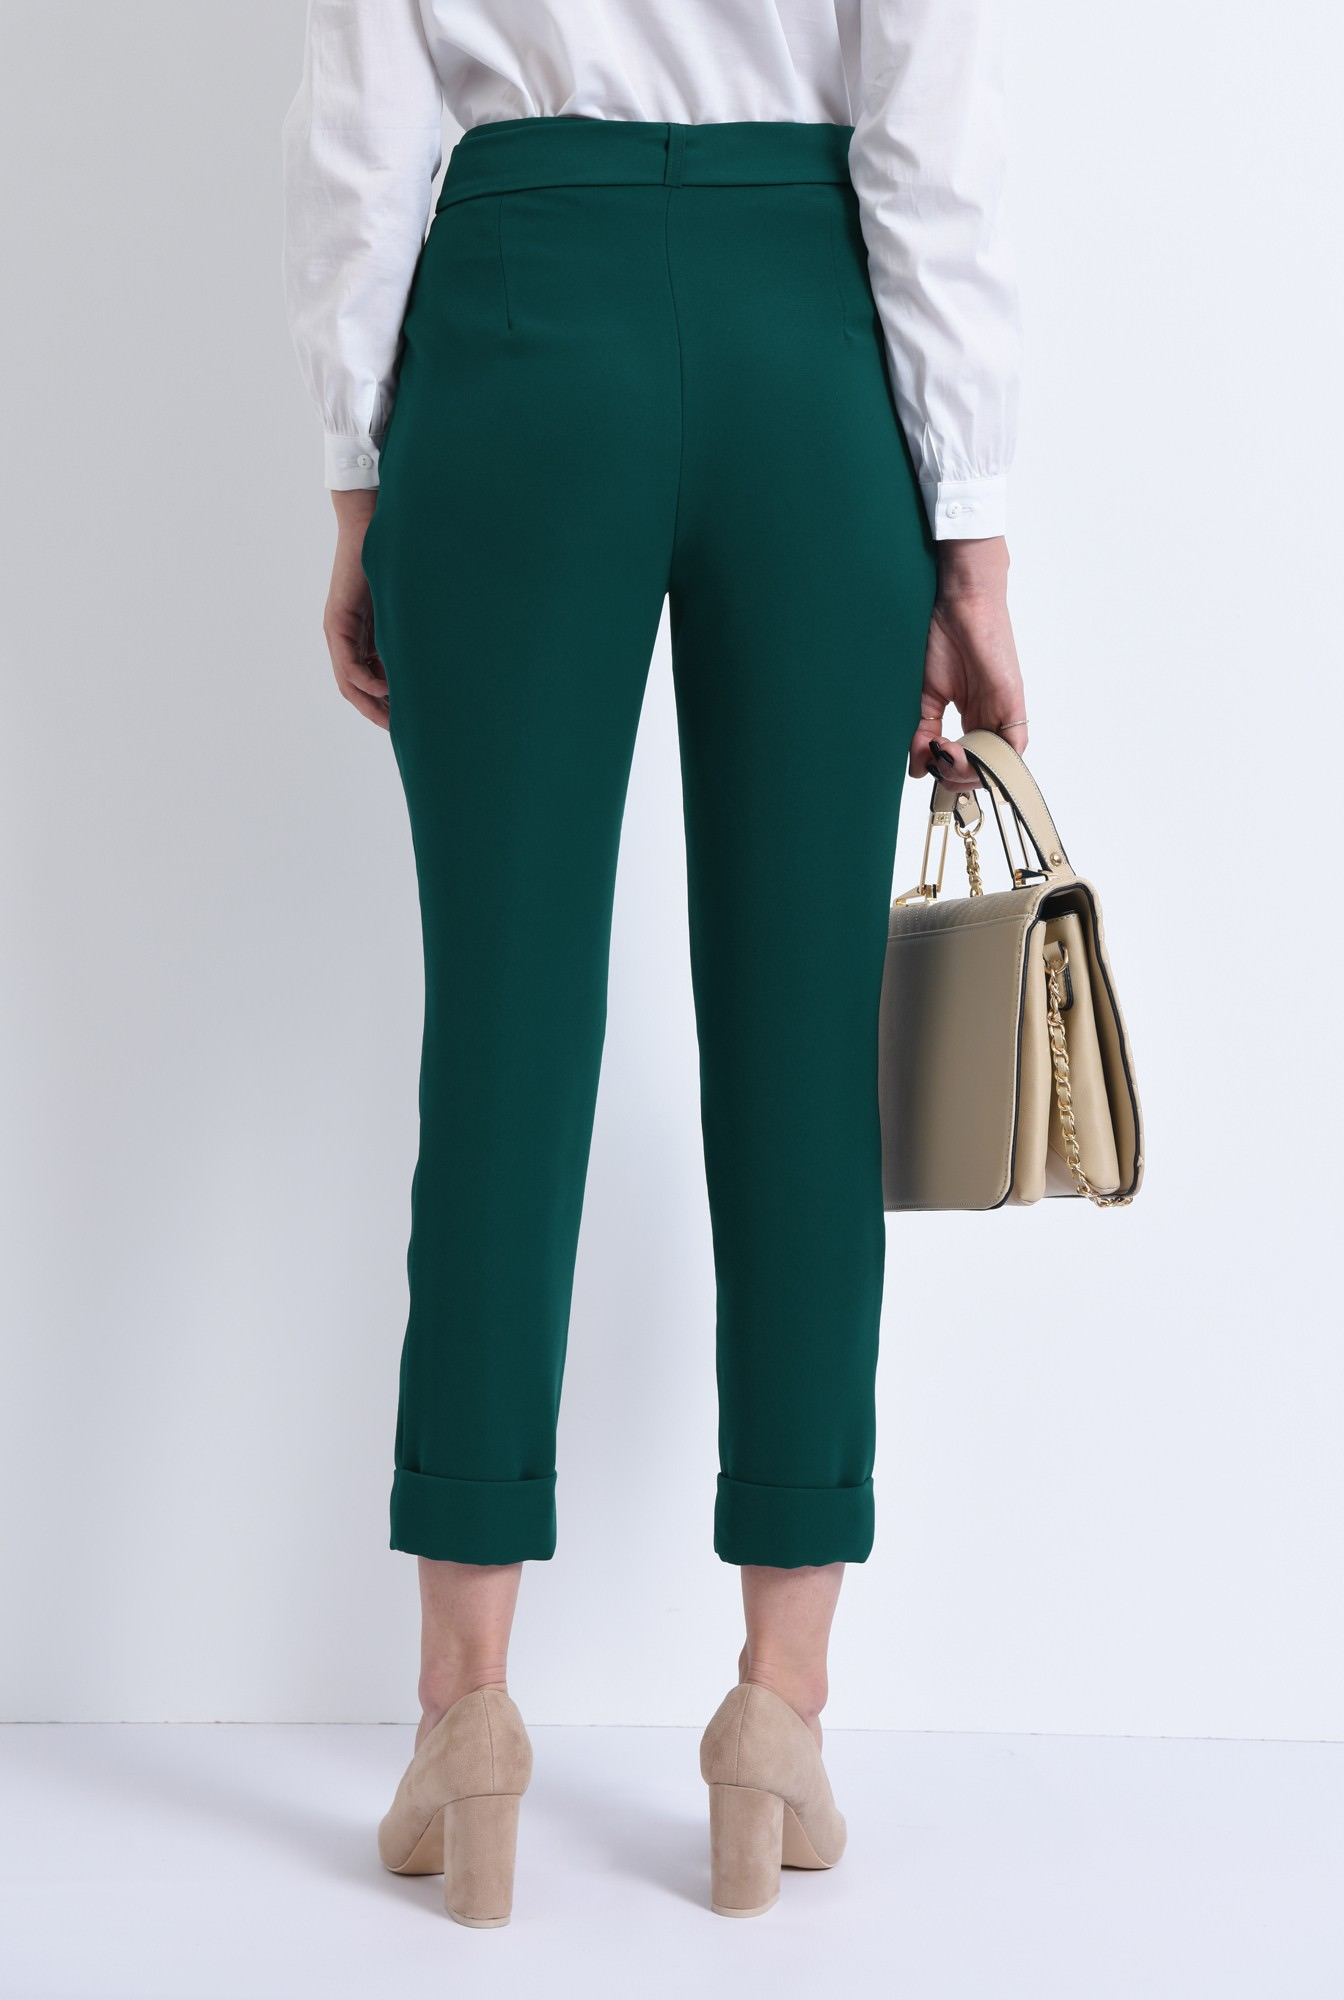 1 - PANTALON OFFICE PT 172-VERDE